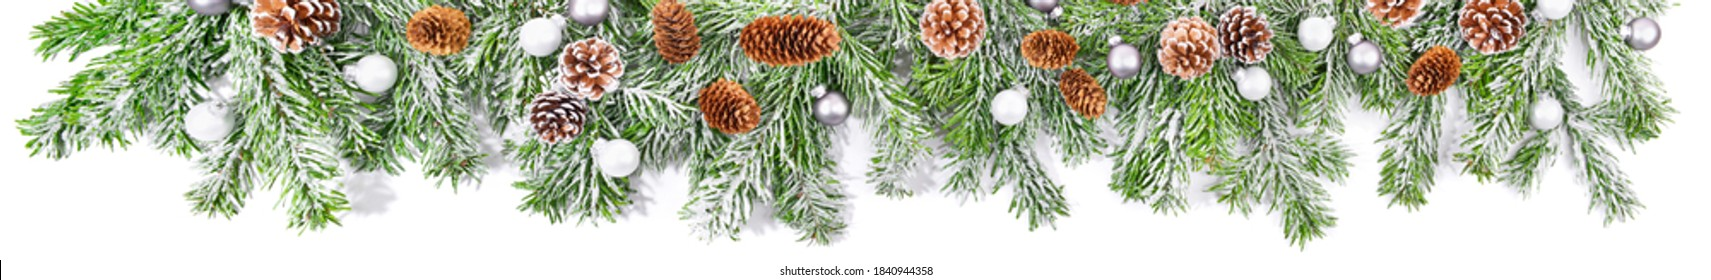 Christmas Fir Brnaches with Snow  isolated on white Background - Super Wide Panorama - Shutterstock ID 1840944358